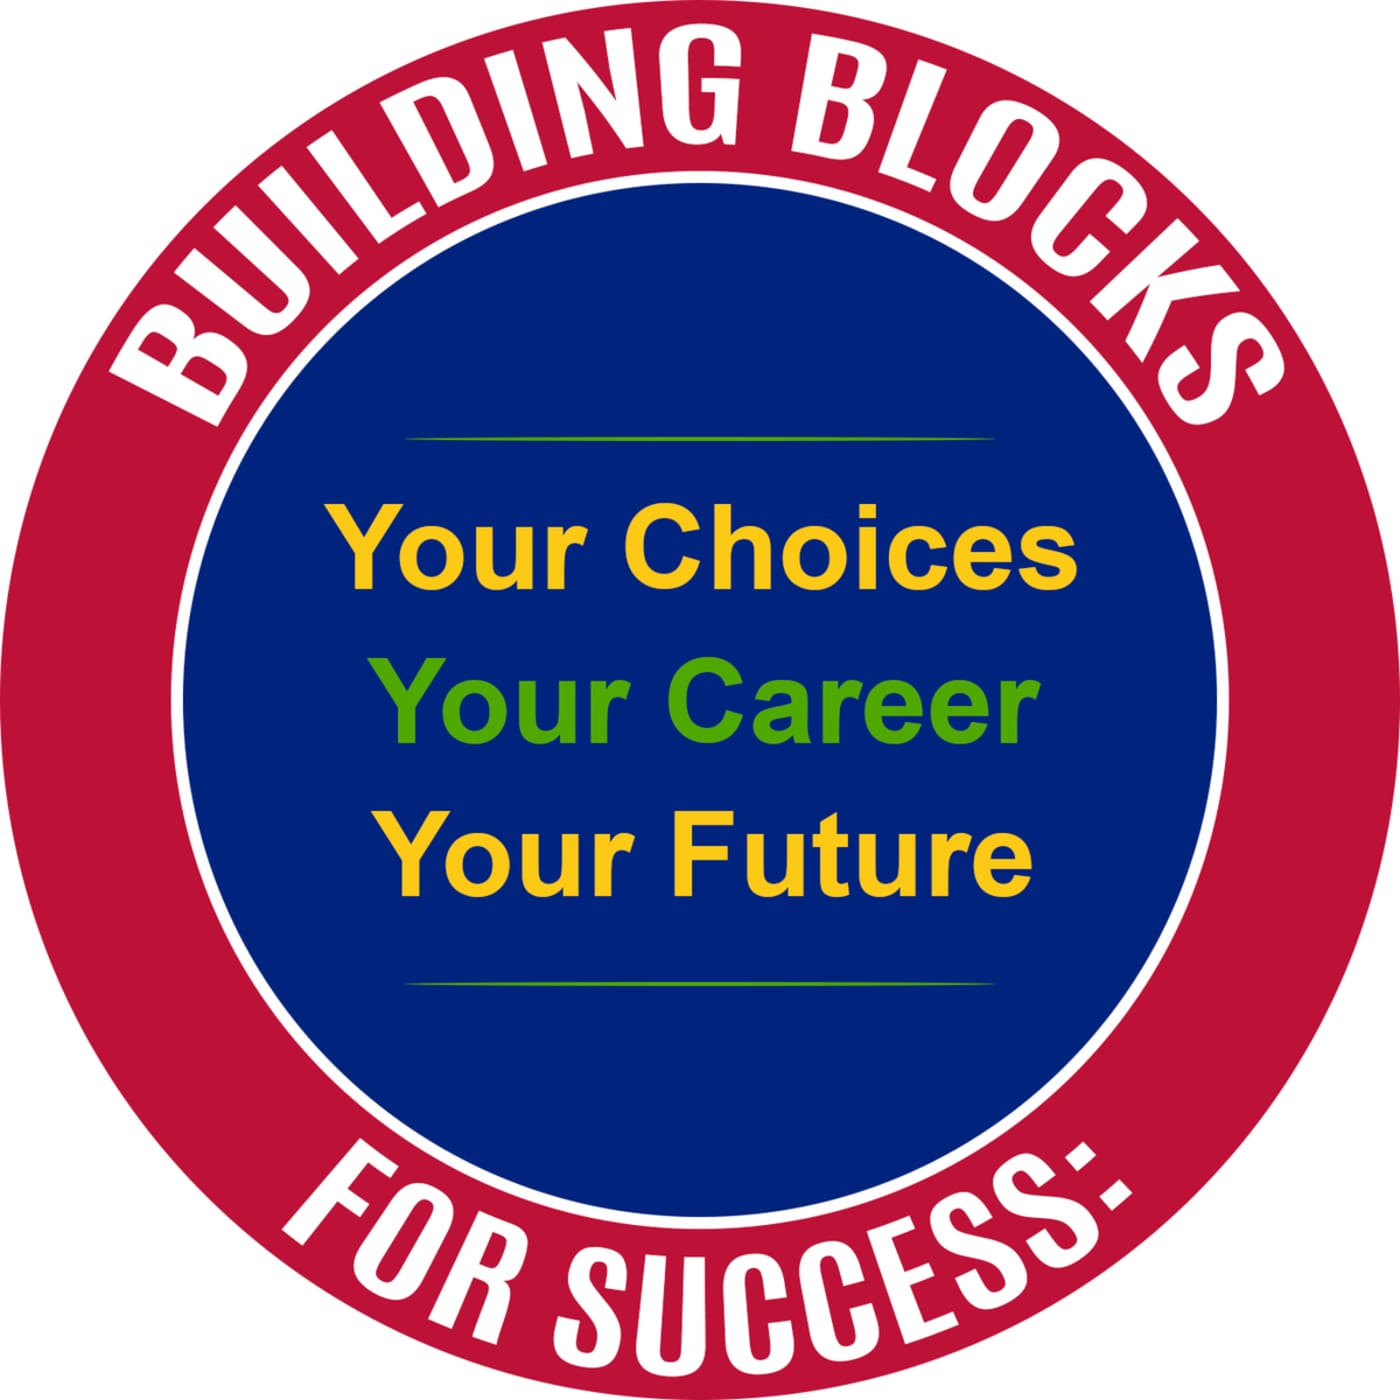 Building Blocks For Success: Your Choices, Your Career, Your Future